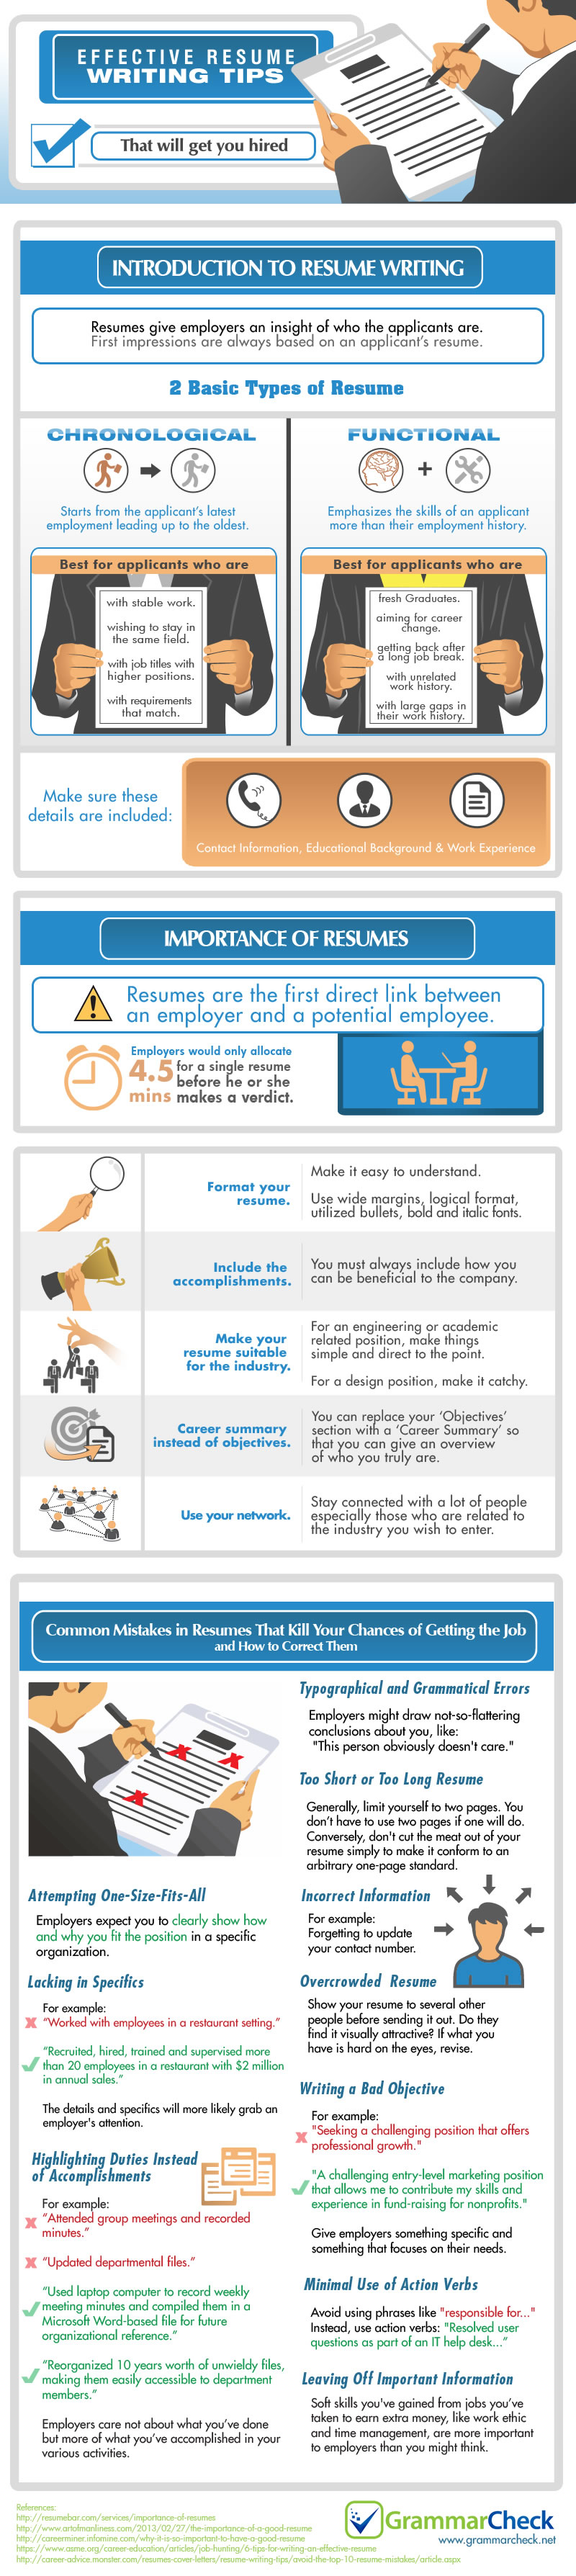 Effective Resume Writing Tips (Infographic)  Tips For Resume Writing